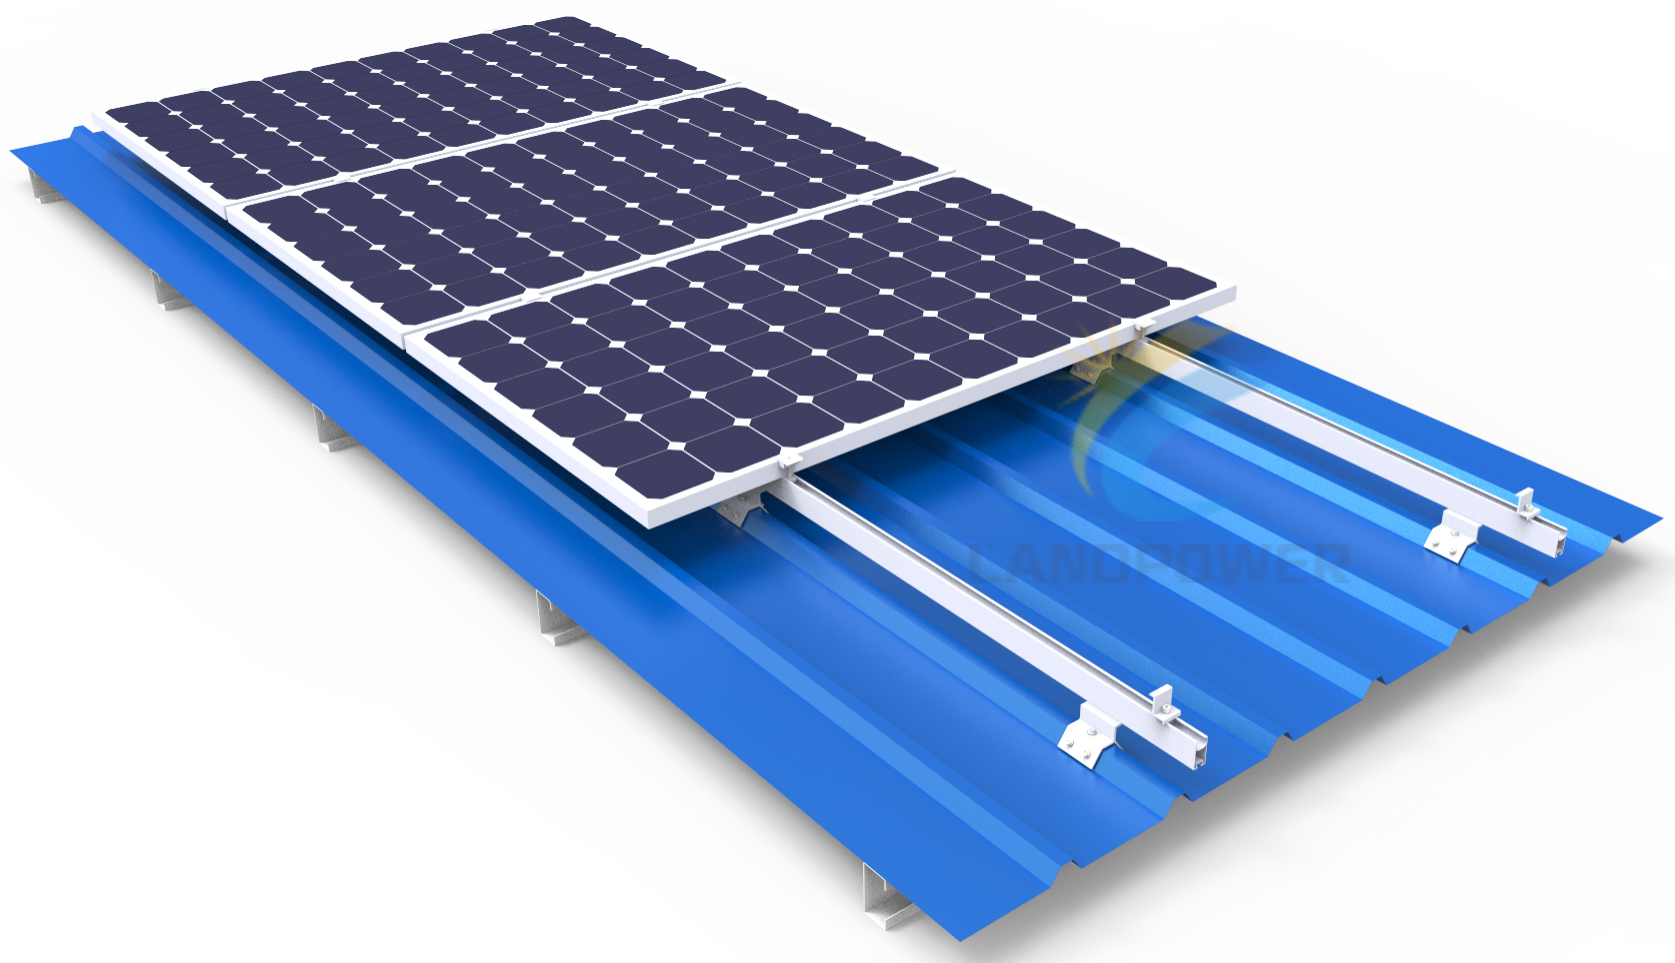 Trapezoidal Metal Roof Mounting Pitched Roof Mounting System Solar Mounting Systems Solar Racking Leading Manufacturer